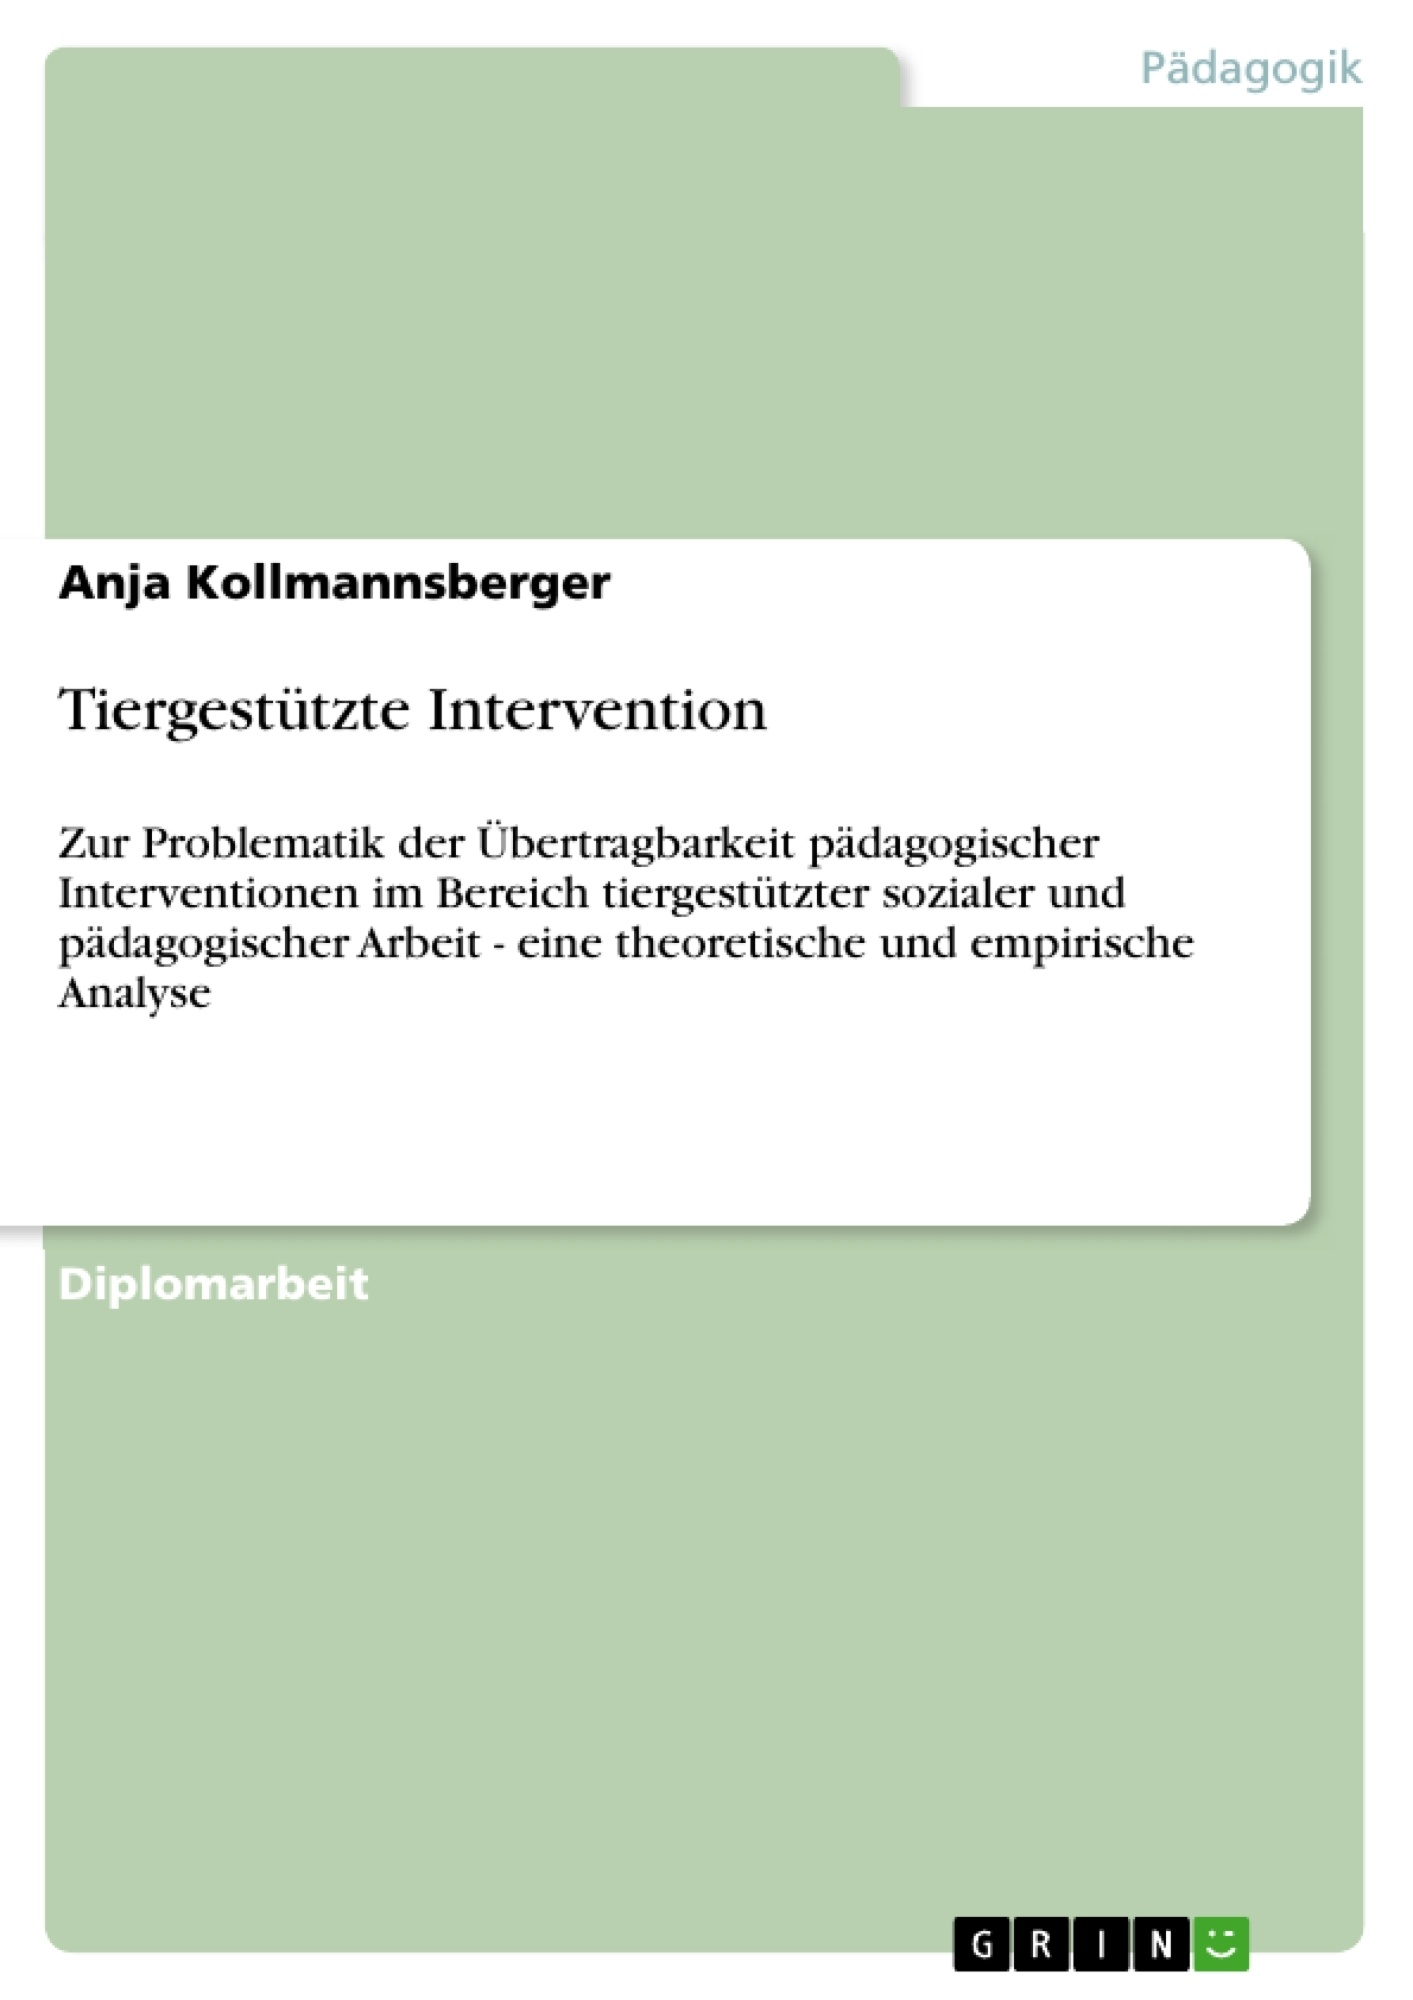 Titel: Tiergestützte Intervention